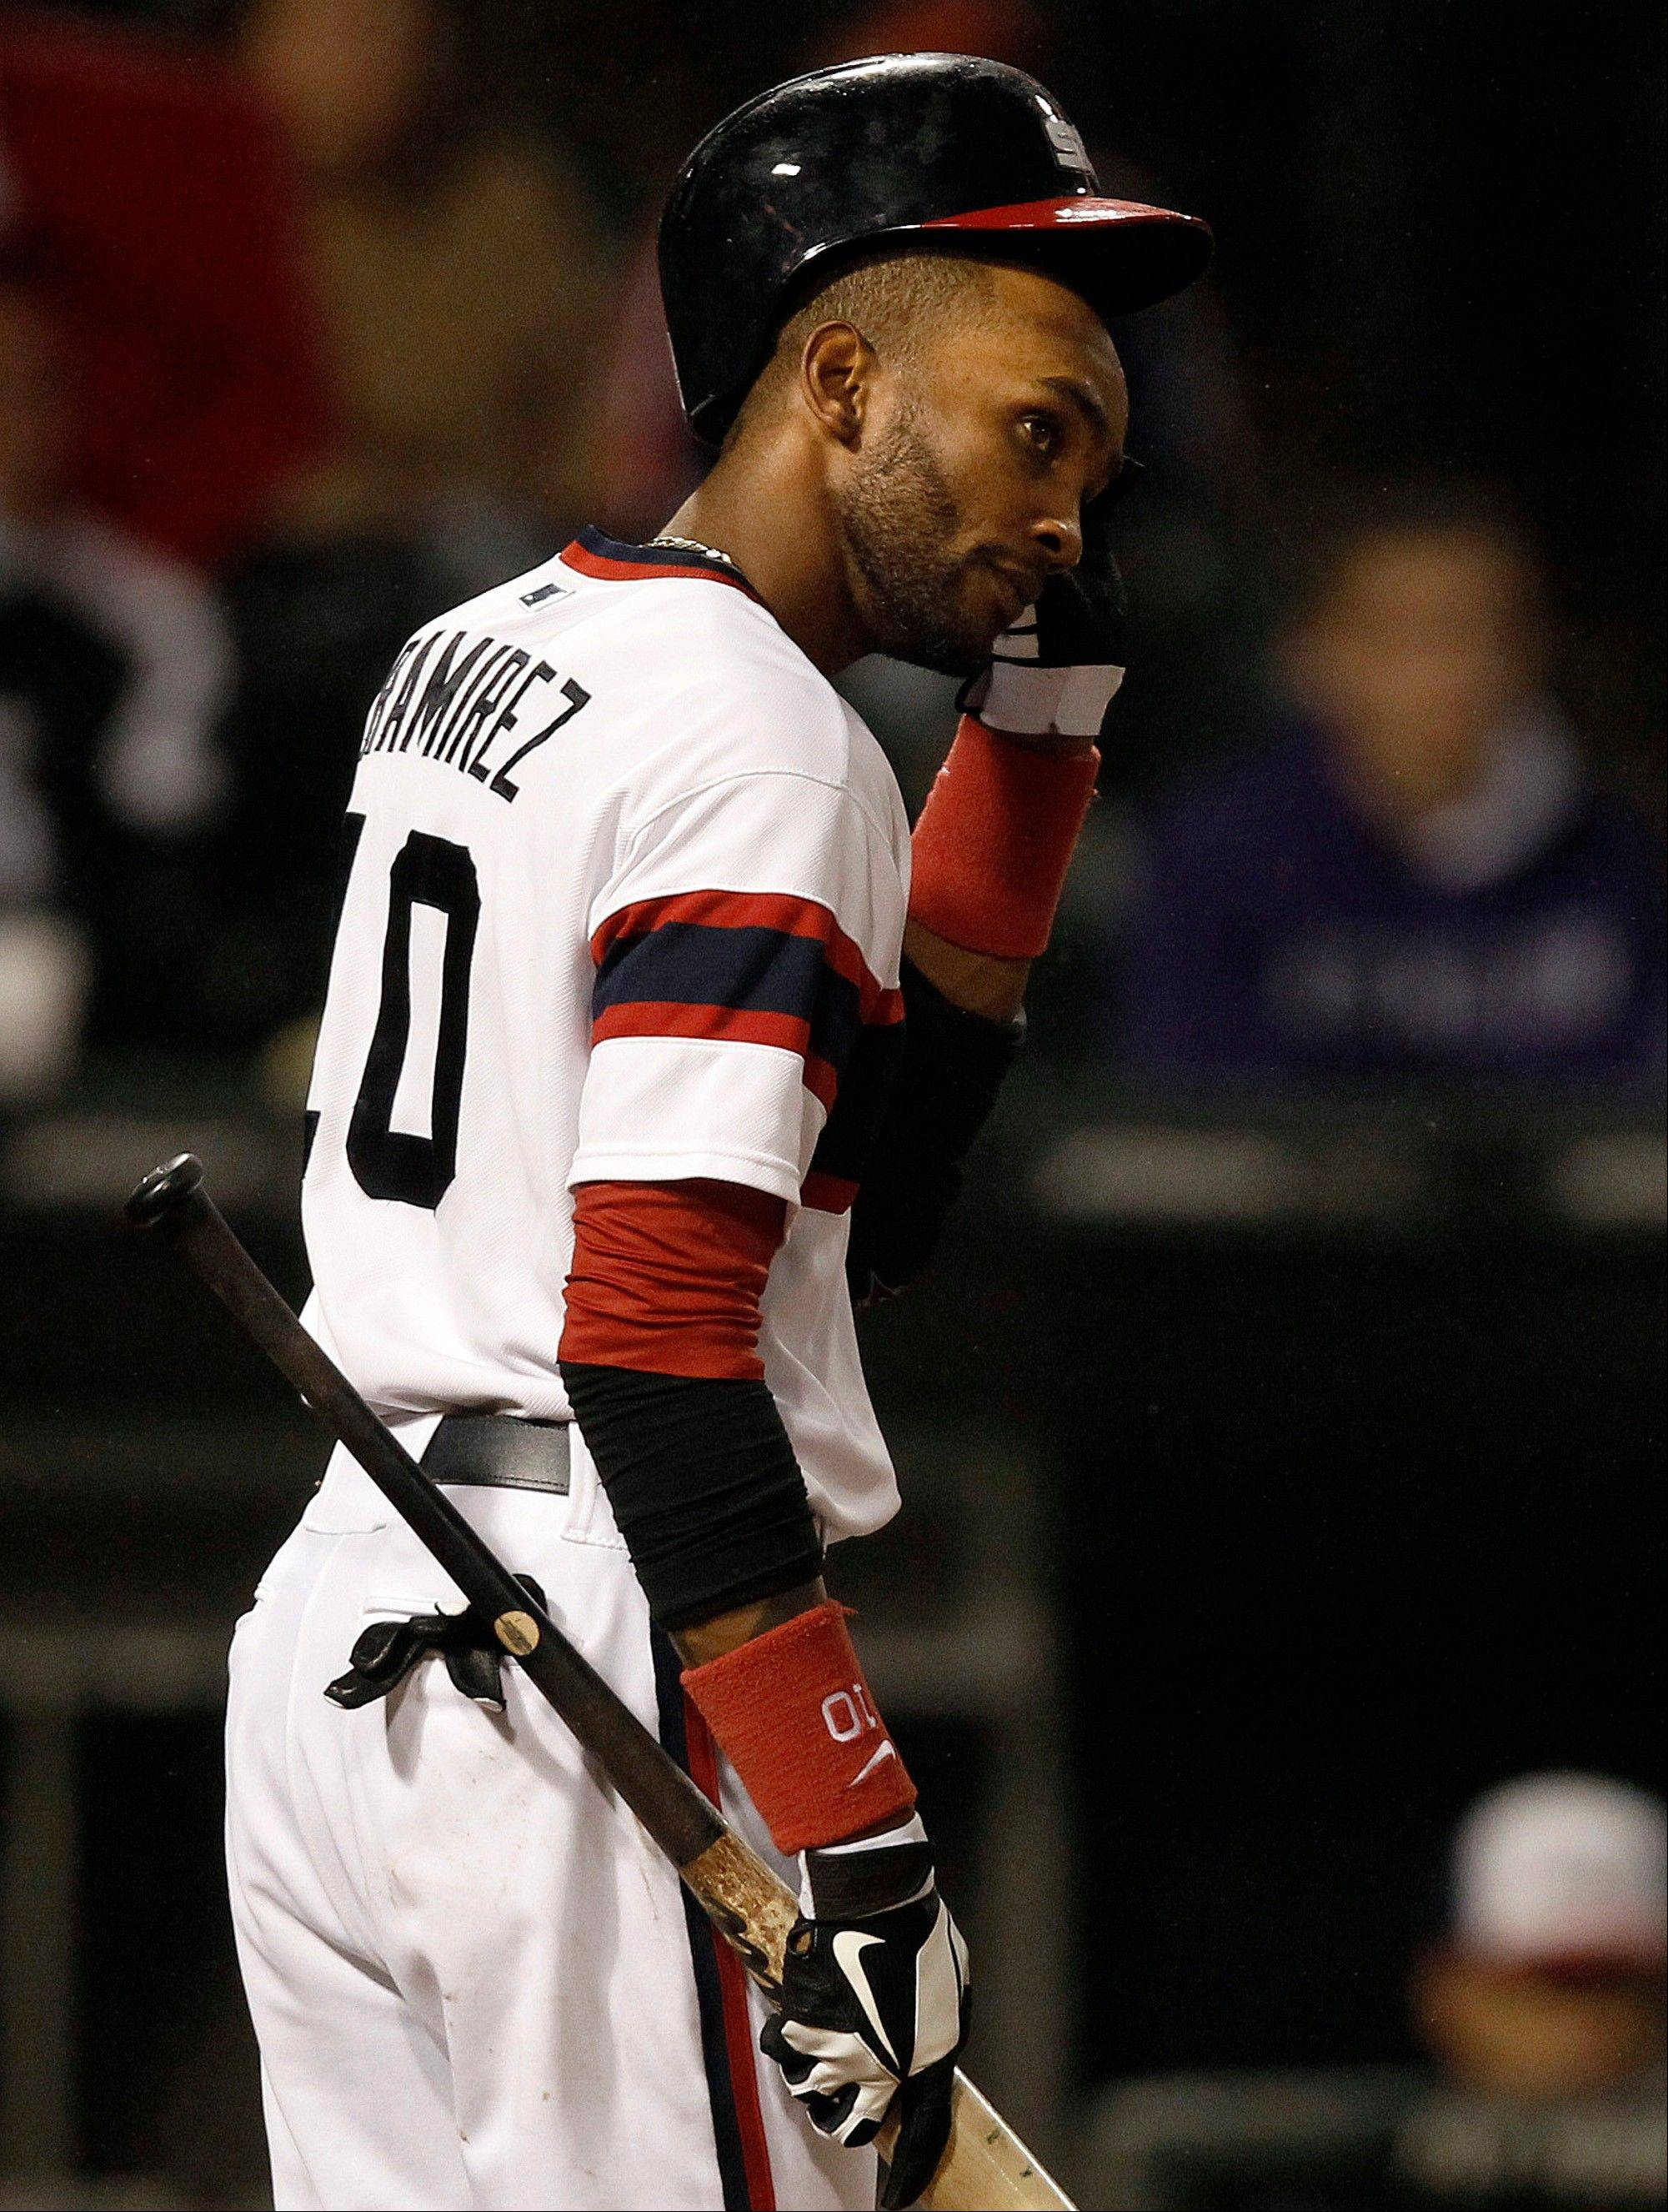 The White Sox's Alexei Ramirez removes his helmet after striking out swinging during the sixth inning of a baseball game against the Cleveland Indians, Sunday, Sept. 15, 2013, in Chicago.